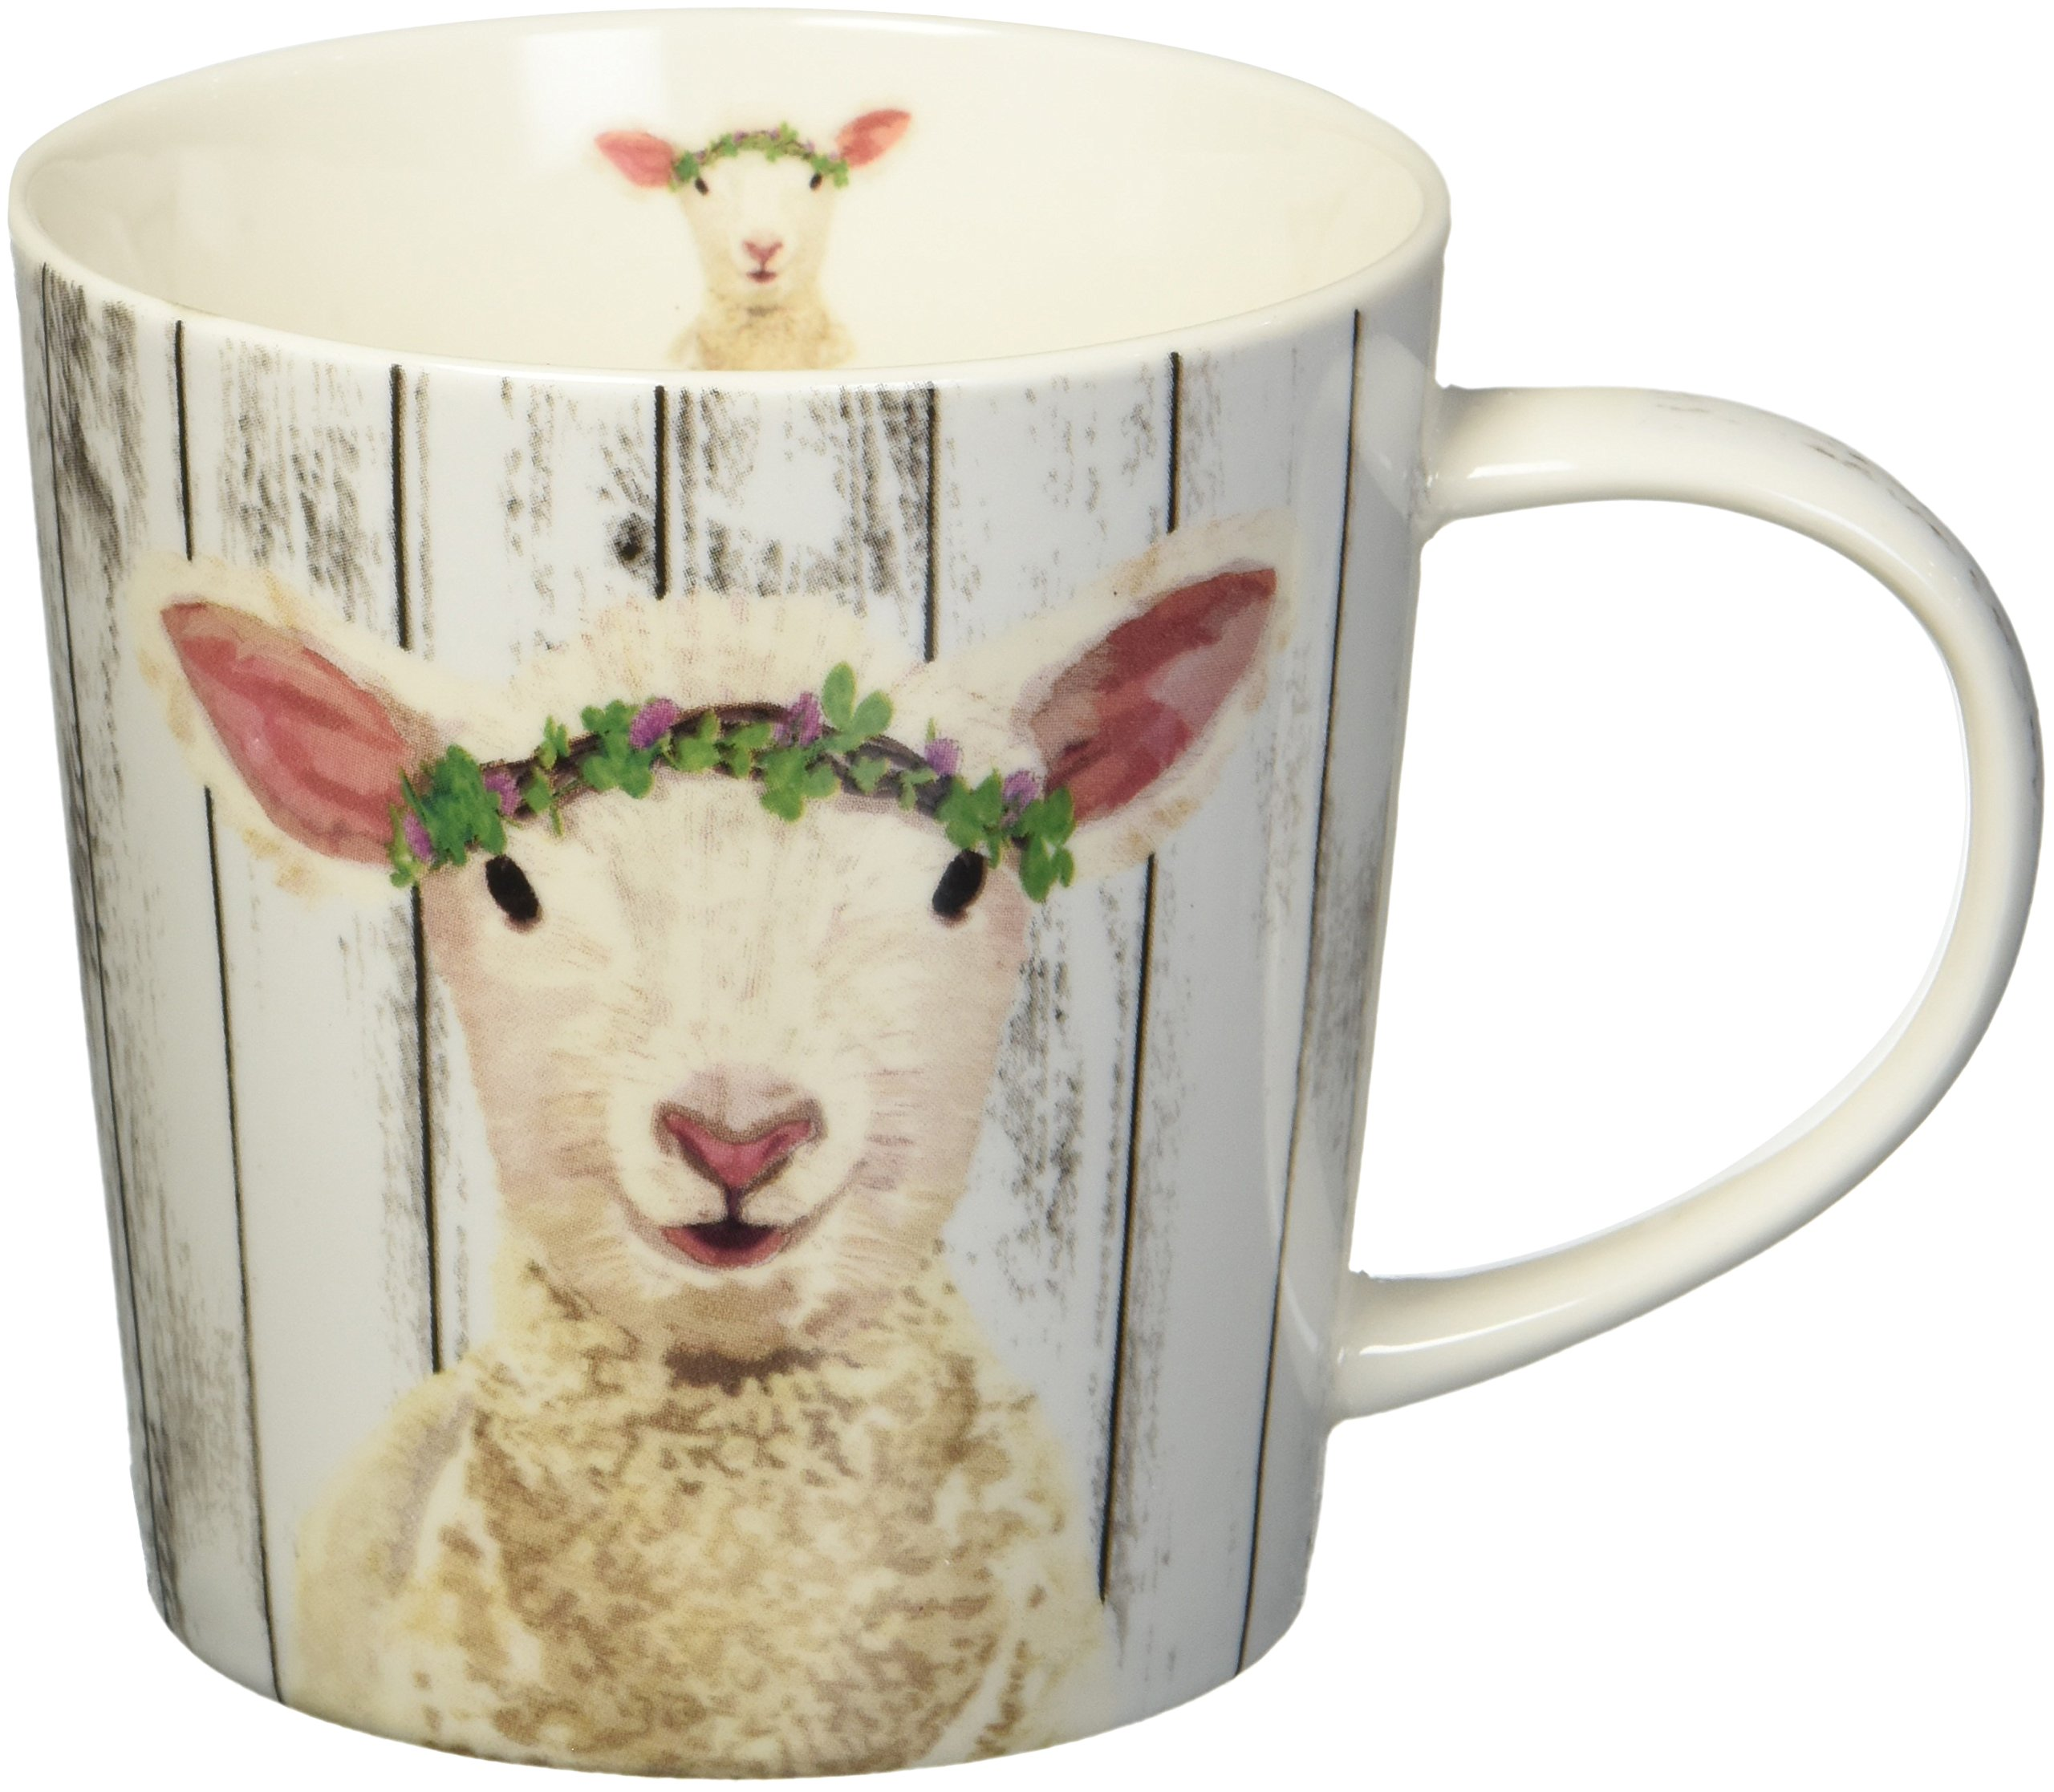 Paperproducts Design 603099 Maisie by Two Can Art Gift Boxed Mug, White